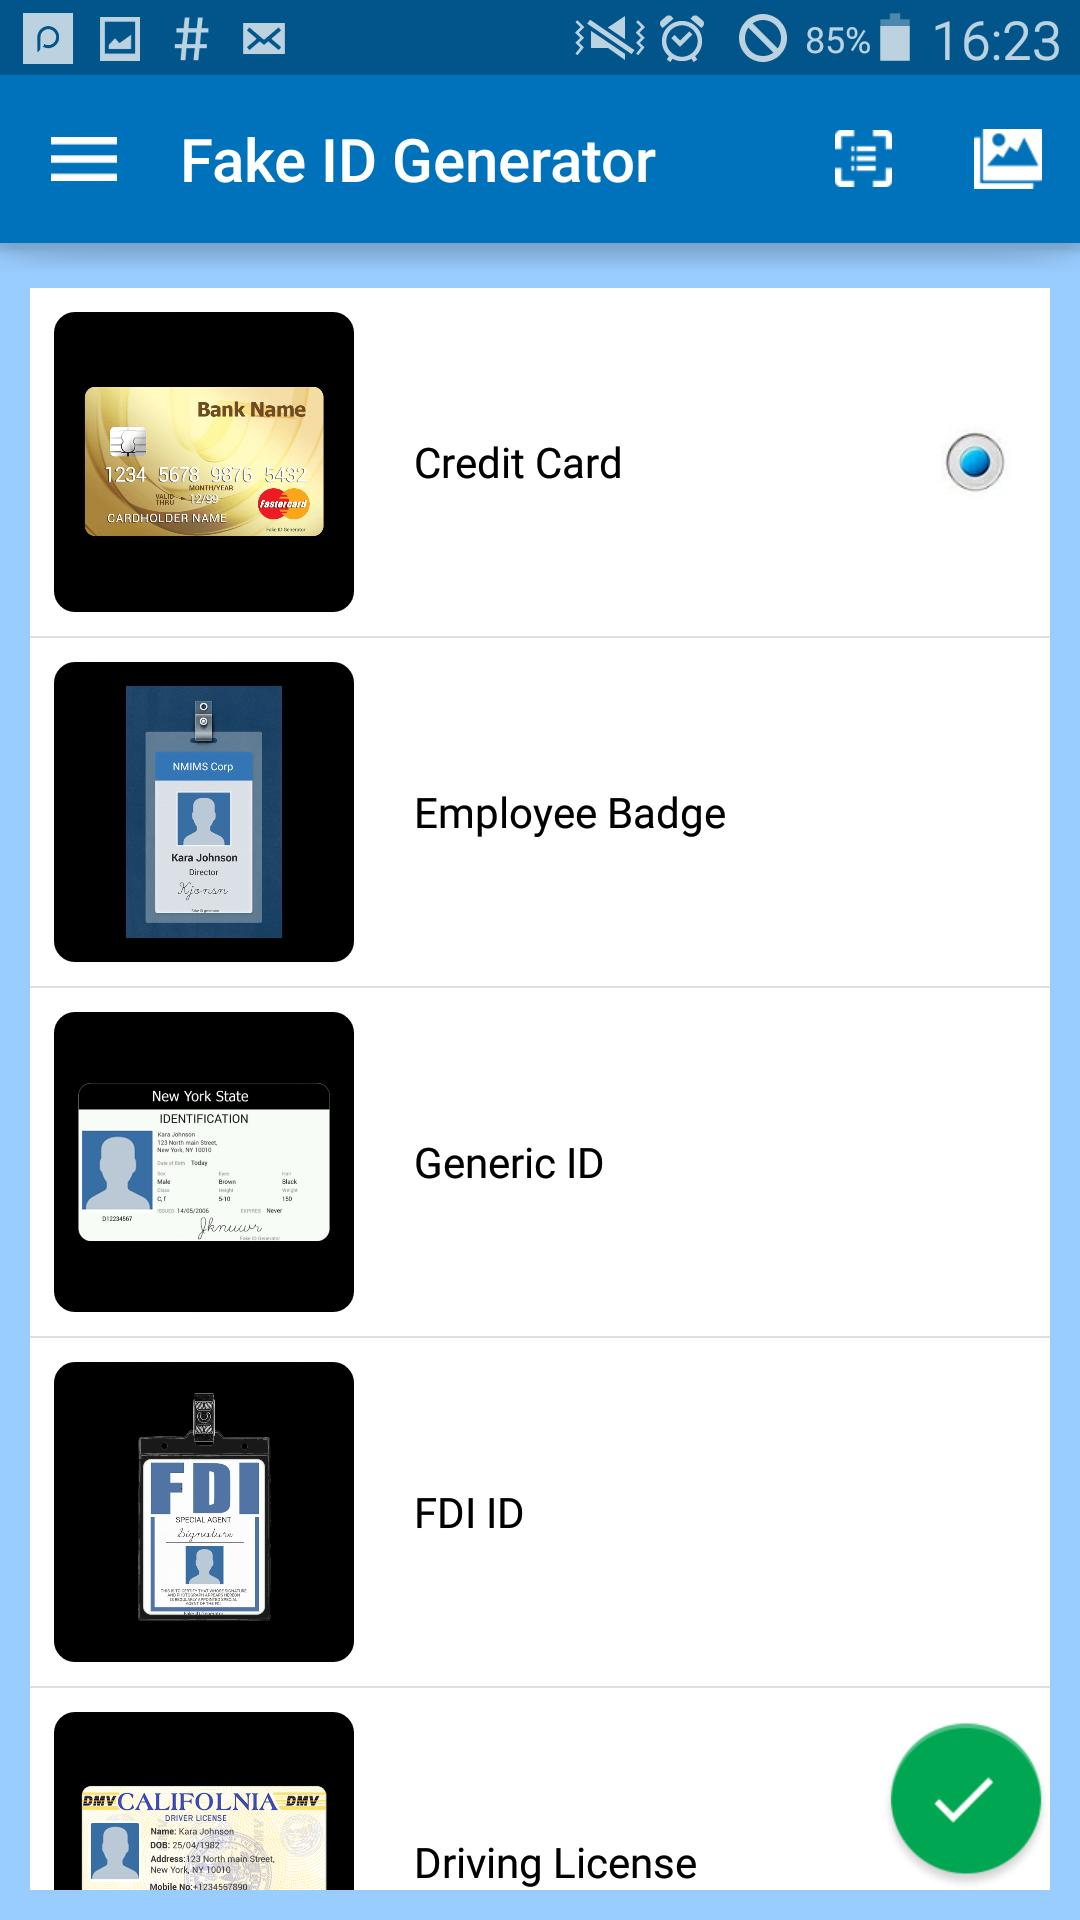 Fake ID Generator 2018 for Android - APK Download